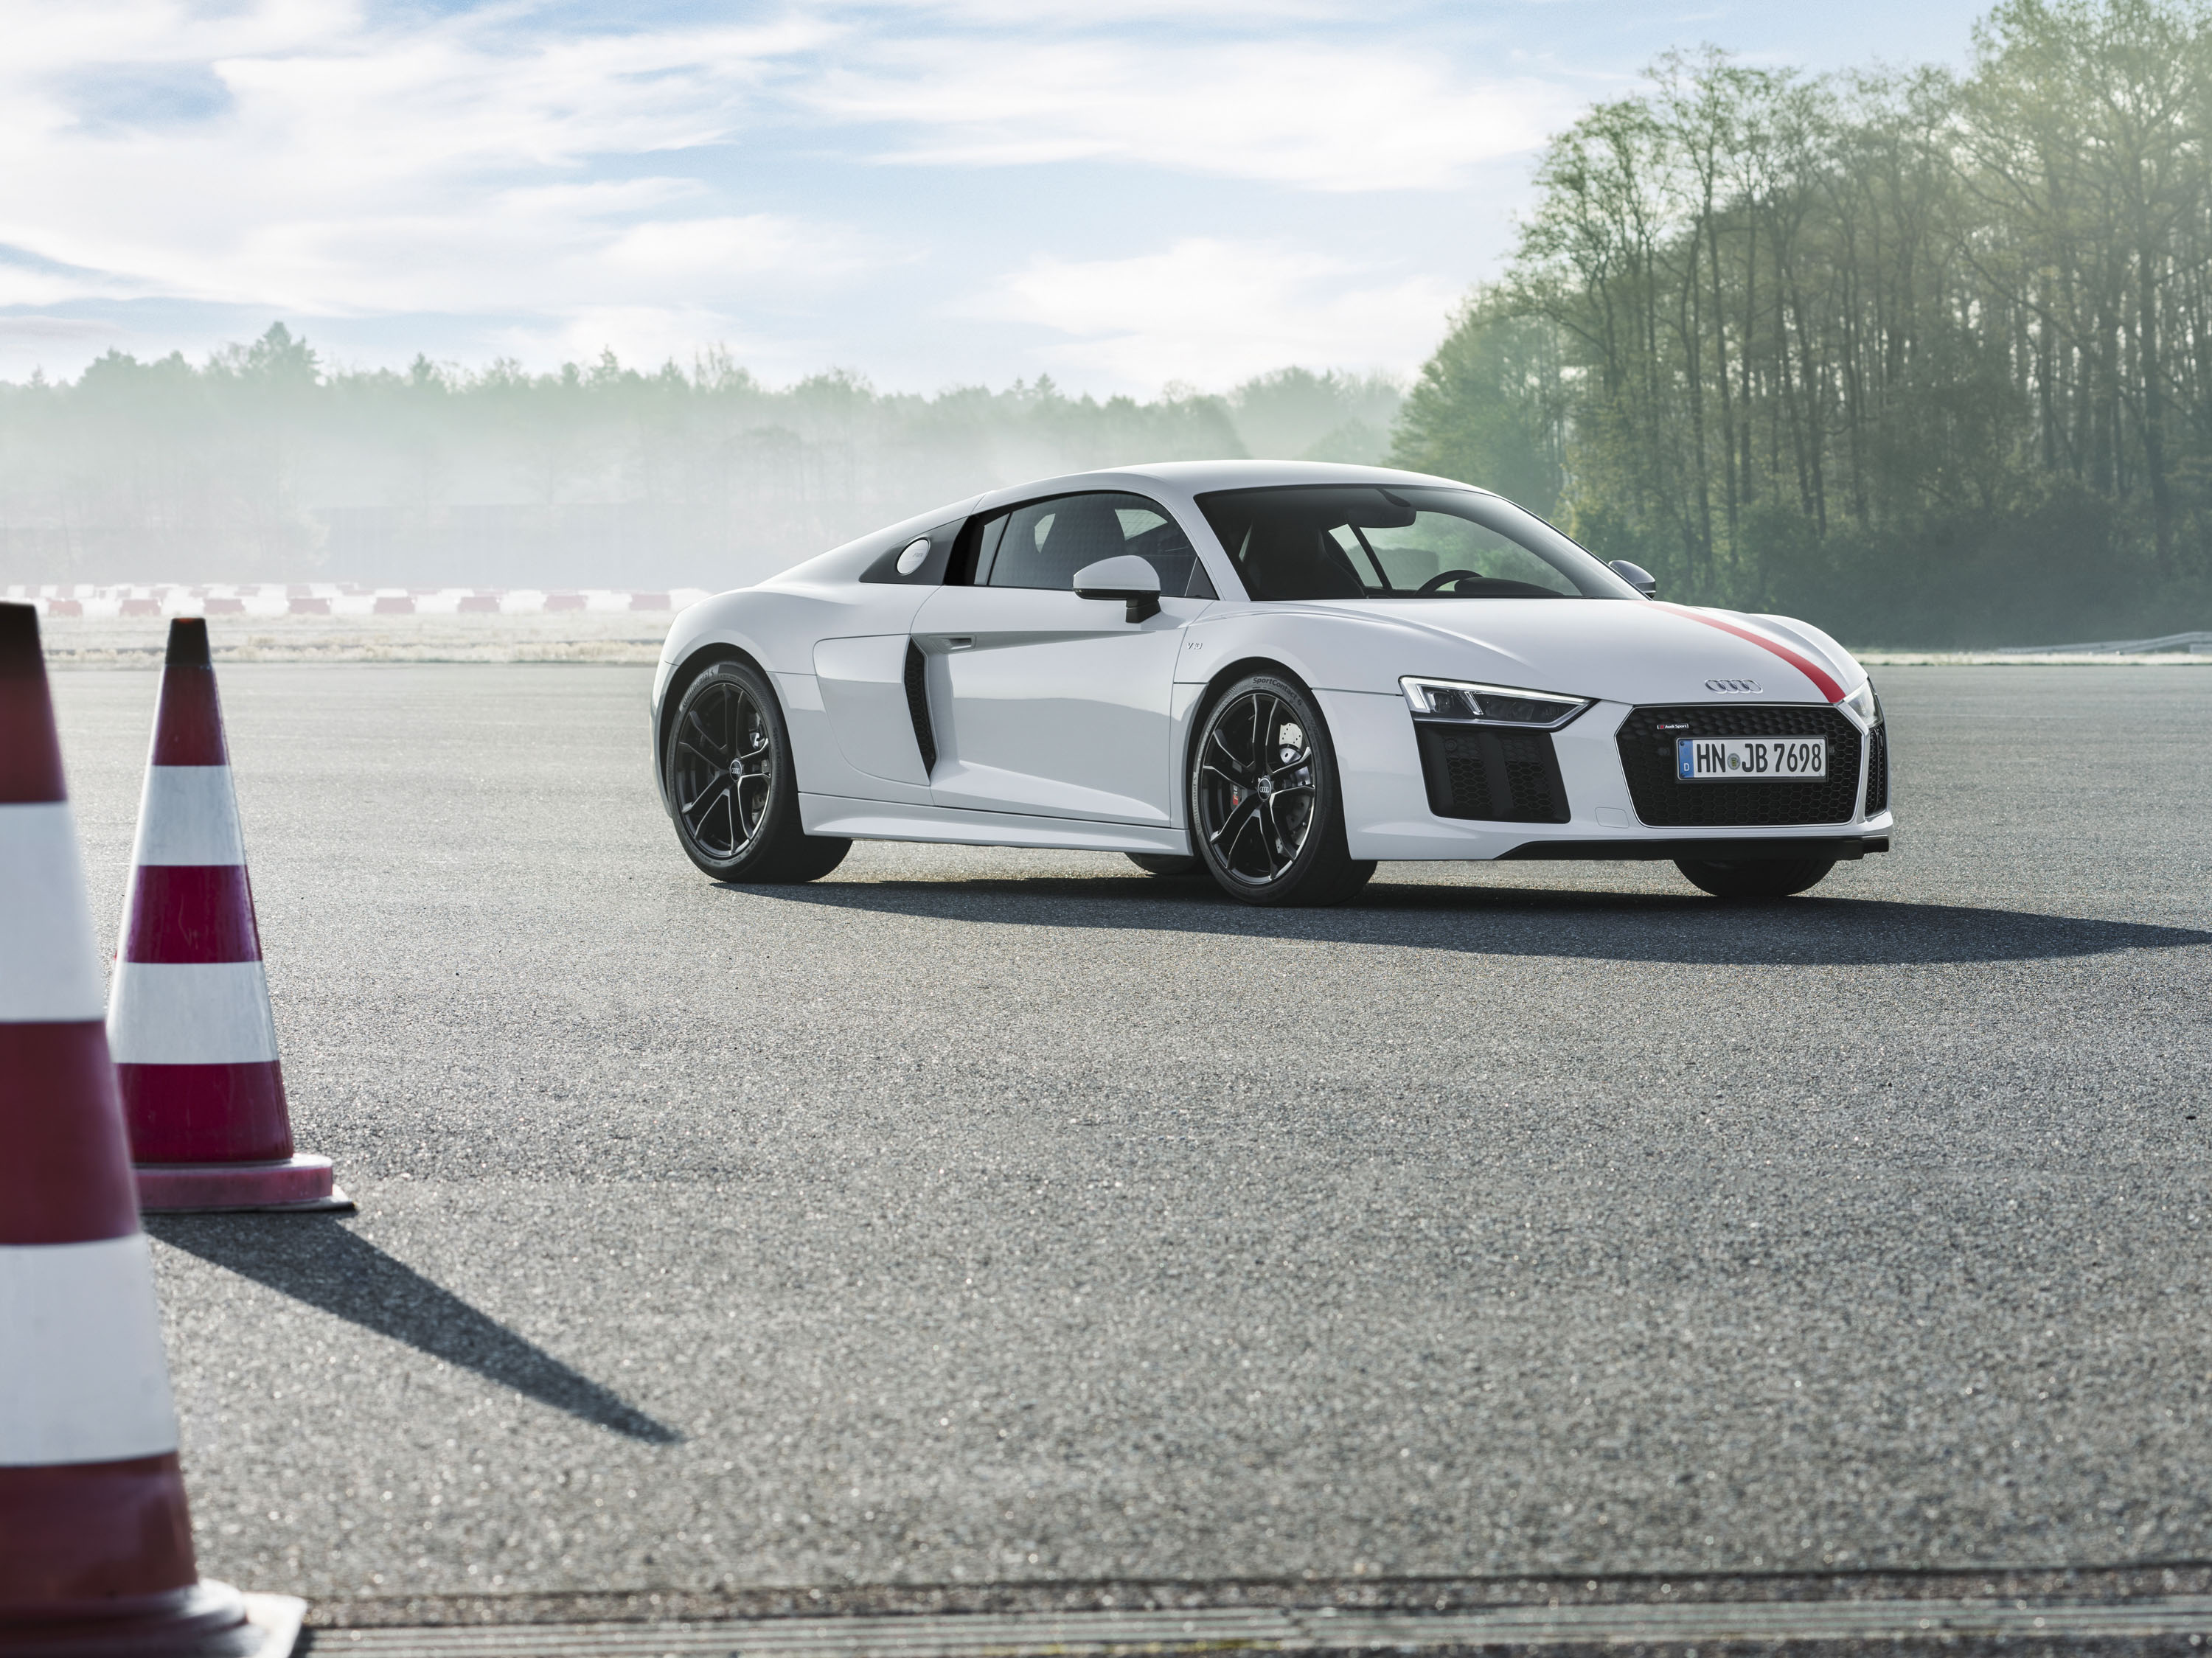 Moore Chrysler Jeep >> Wallpaper Of The Day: 2018 Audi R8 RWS | Top Speed